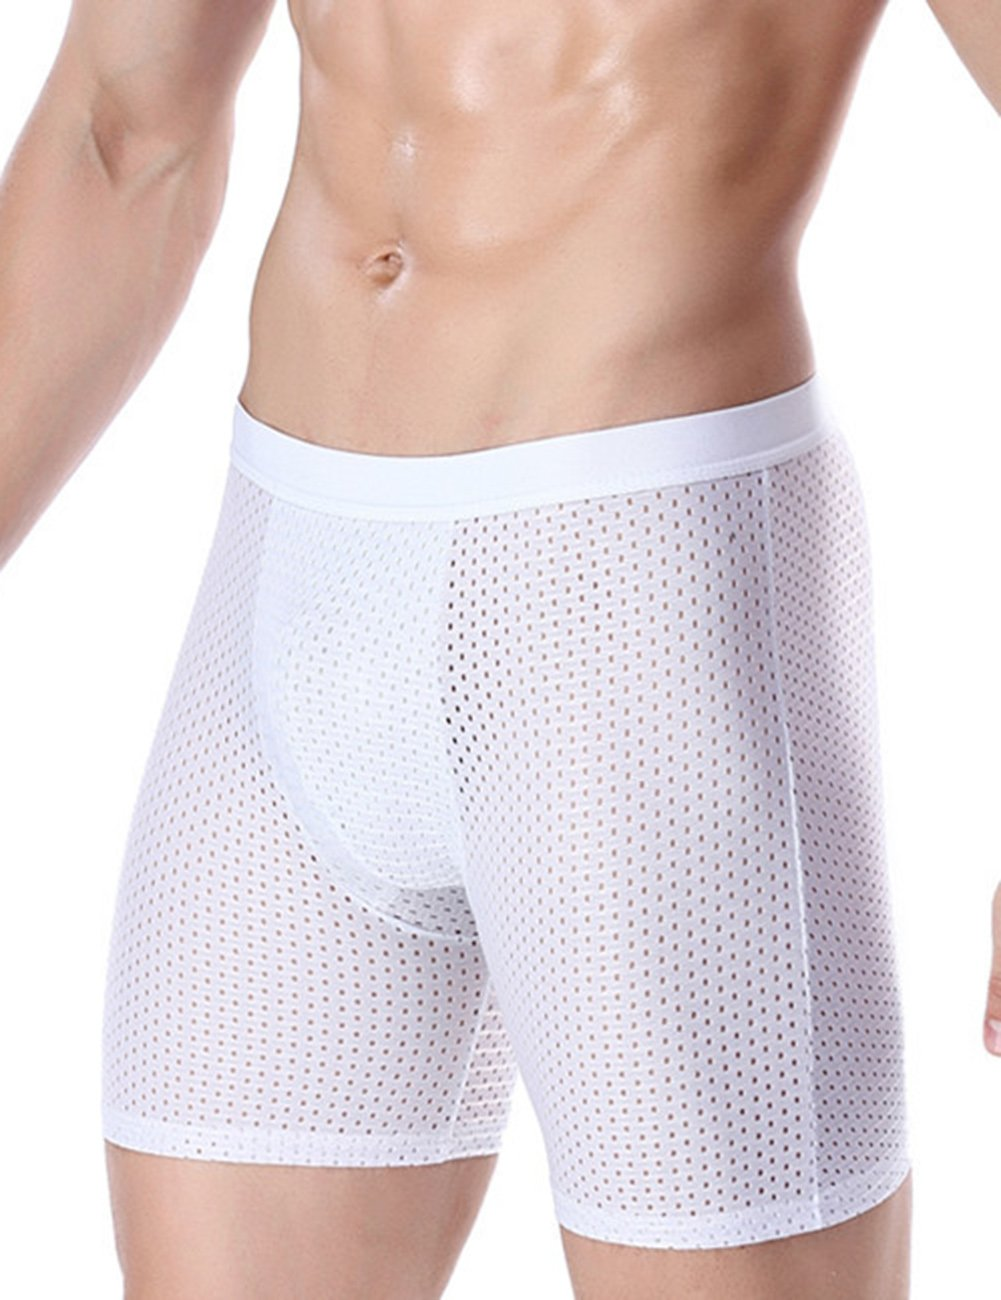 RONSHIN Male Ice Silk Lengthened Boxer Briefs Comfortable Mesh Lingerie Gift